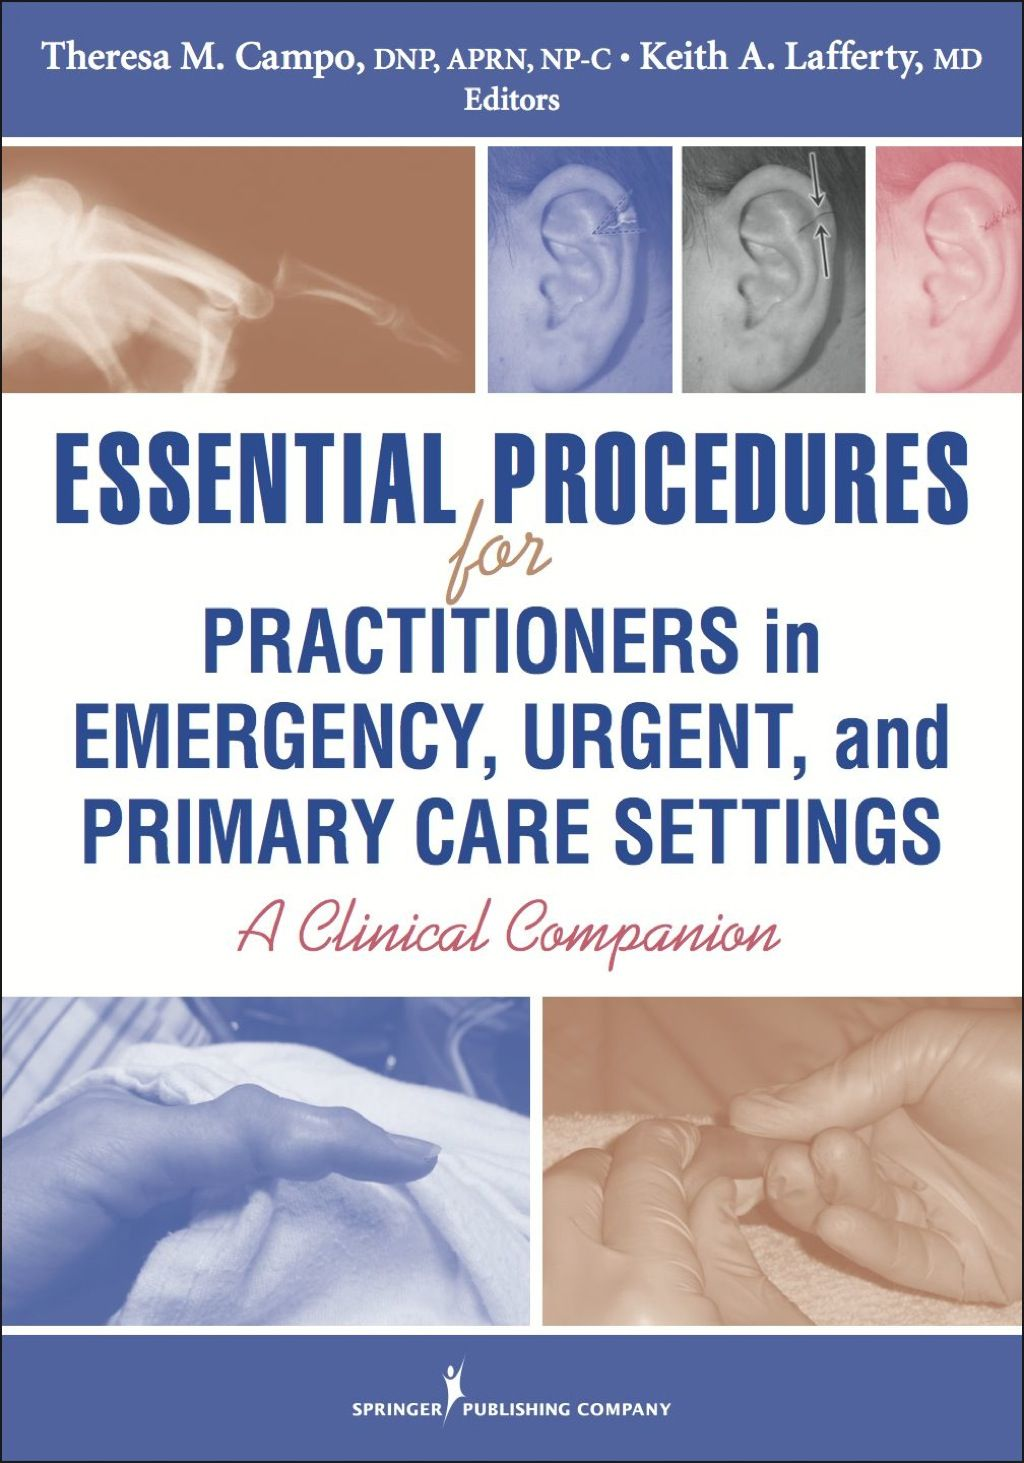 Essential procedures for practitioners in emergency urgent